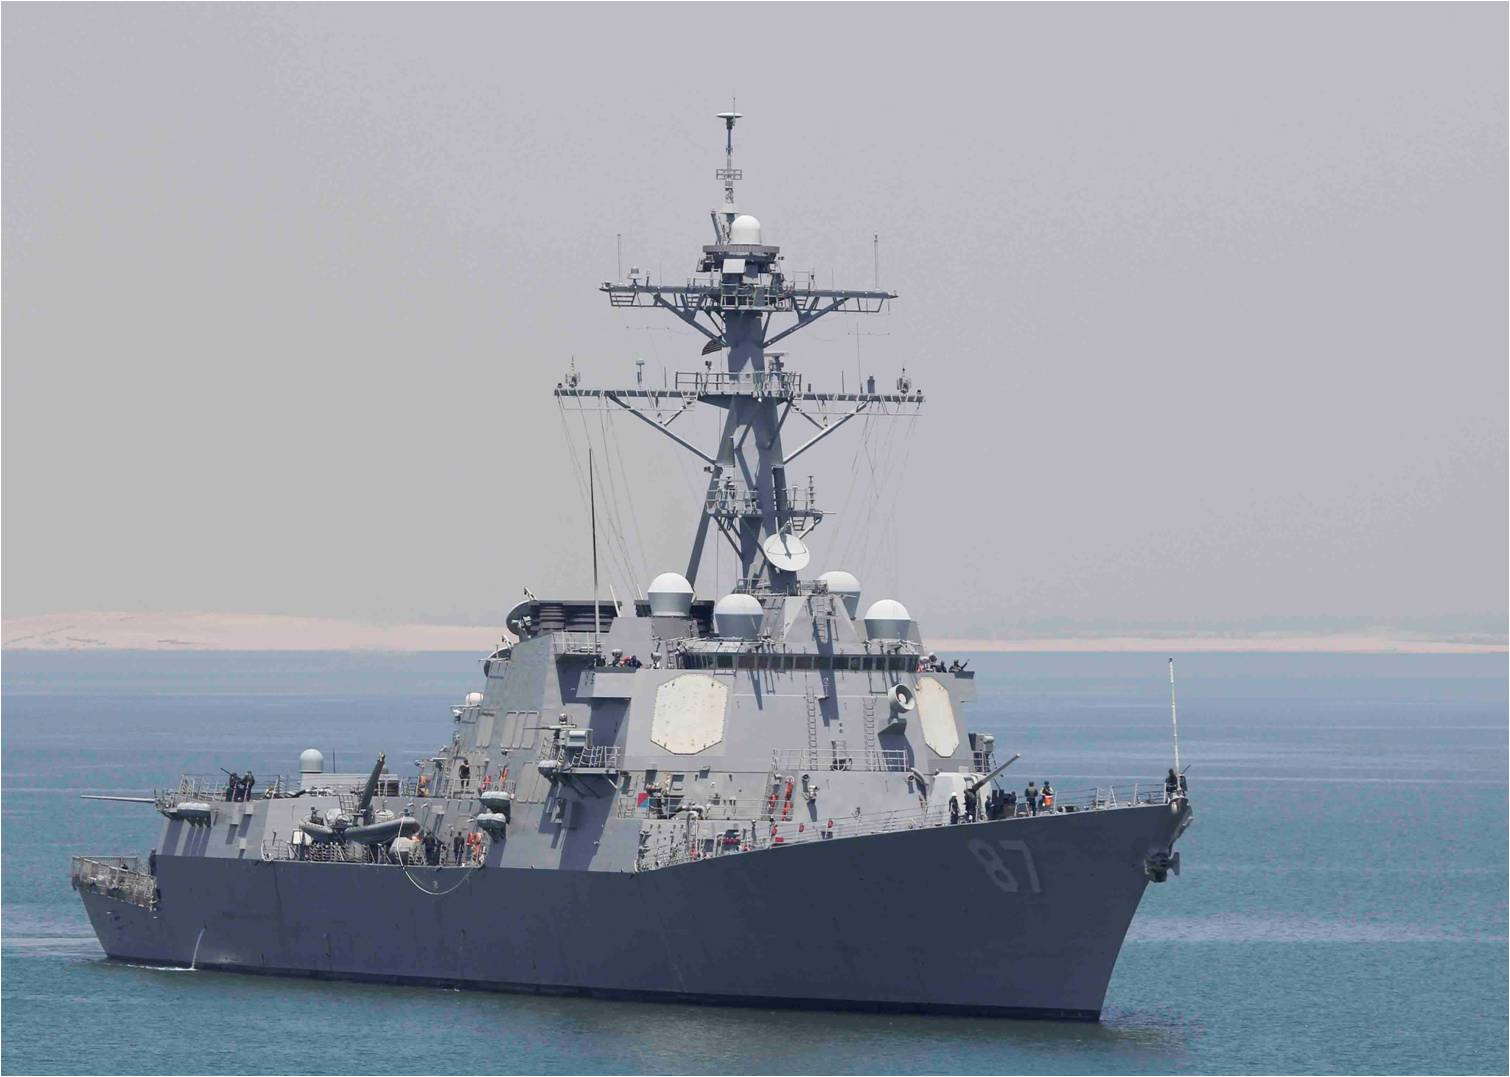 U.S. ship targeted in 3rd cruise missile attack off Yemen